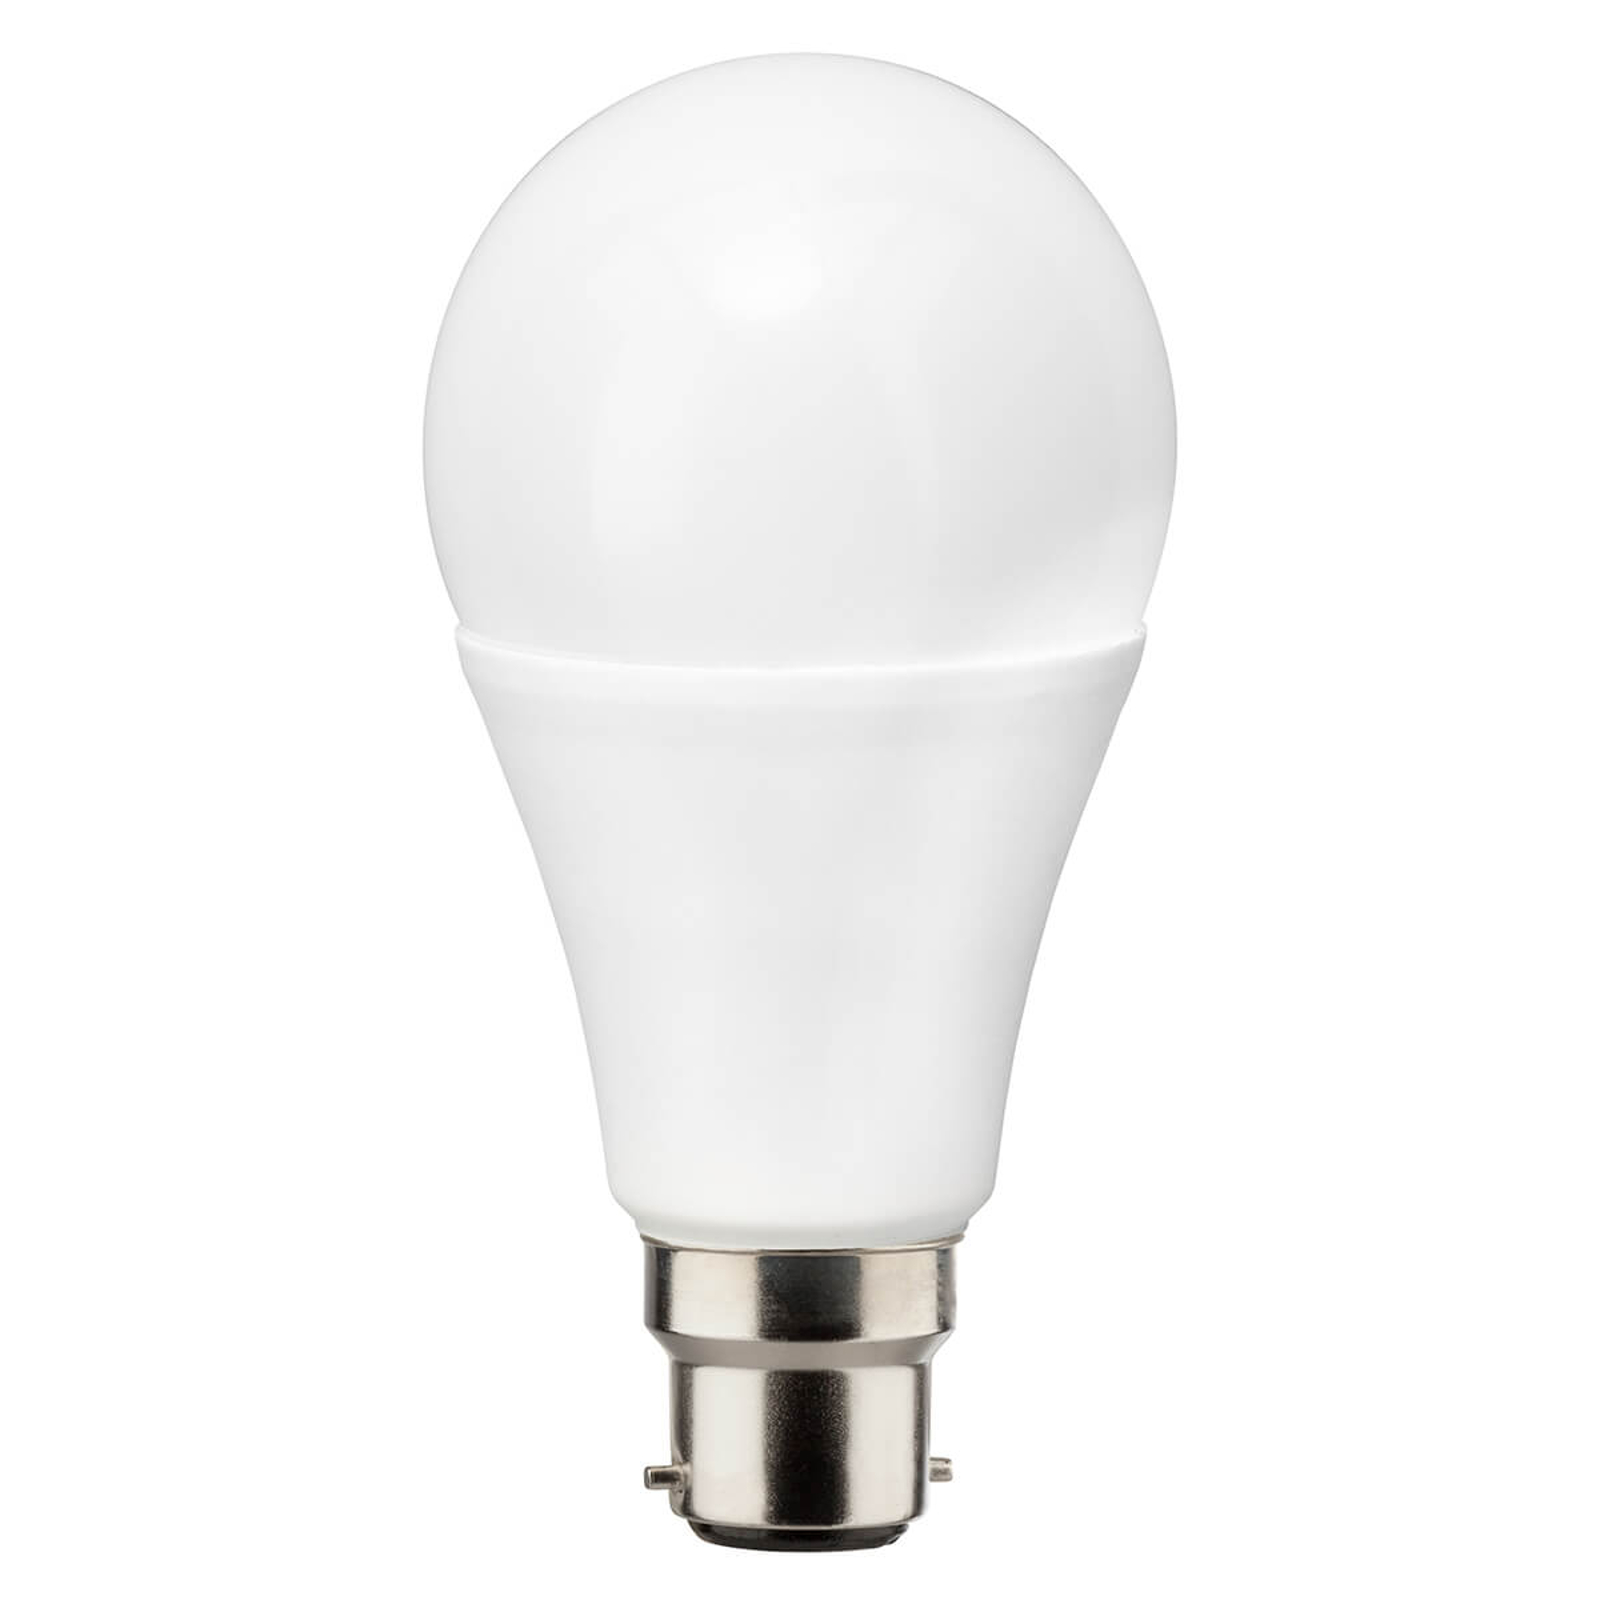 Acquista B22d 12W 840 lampadina LED